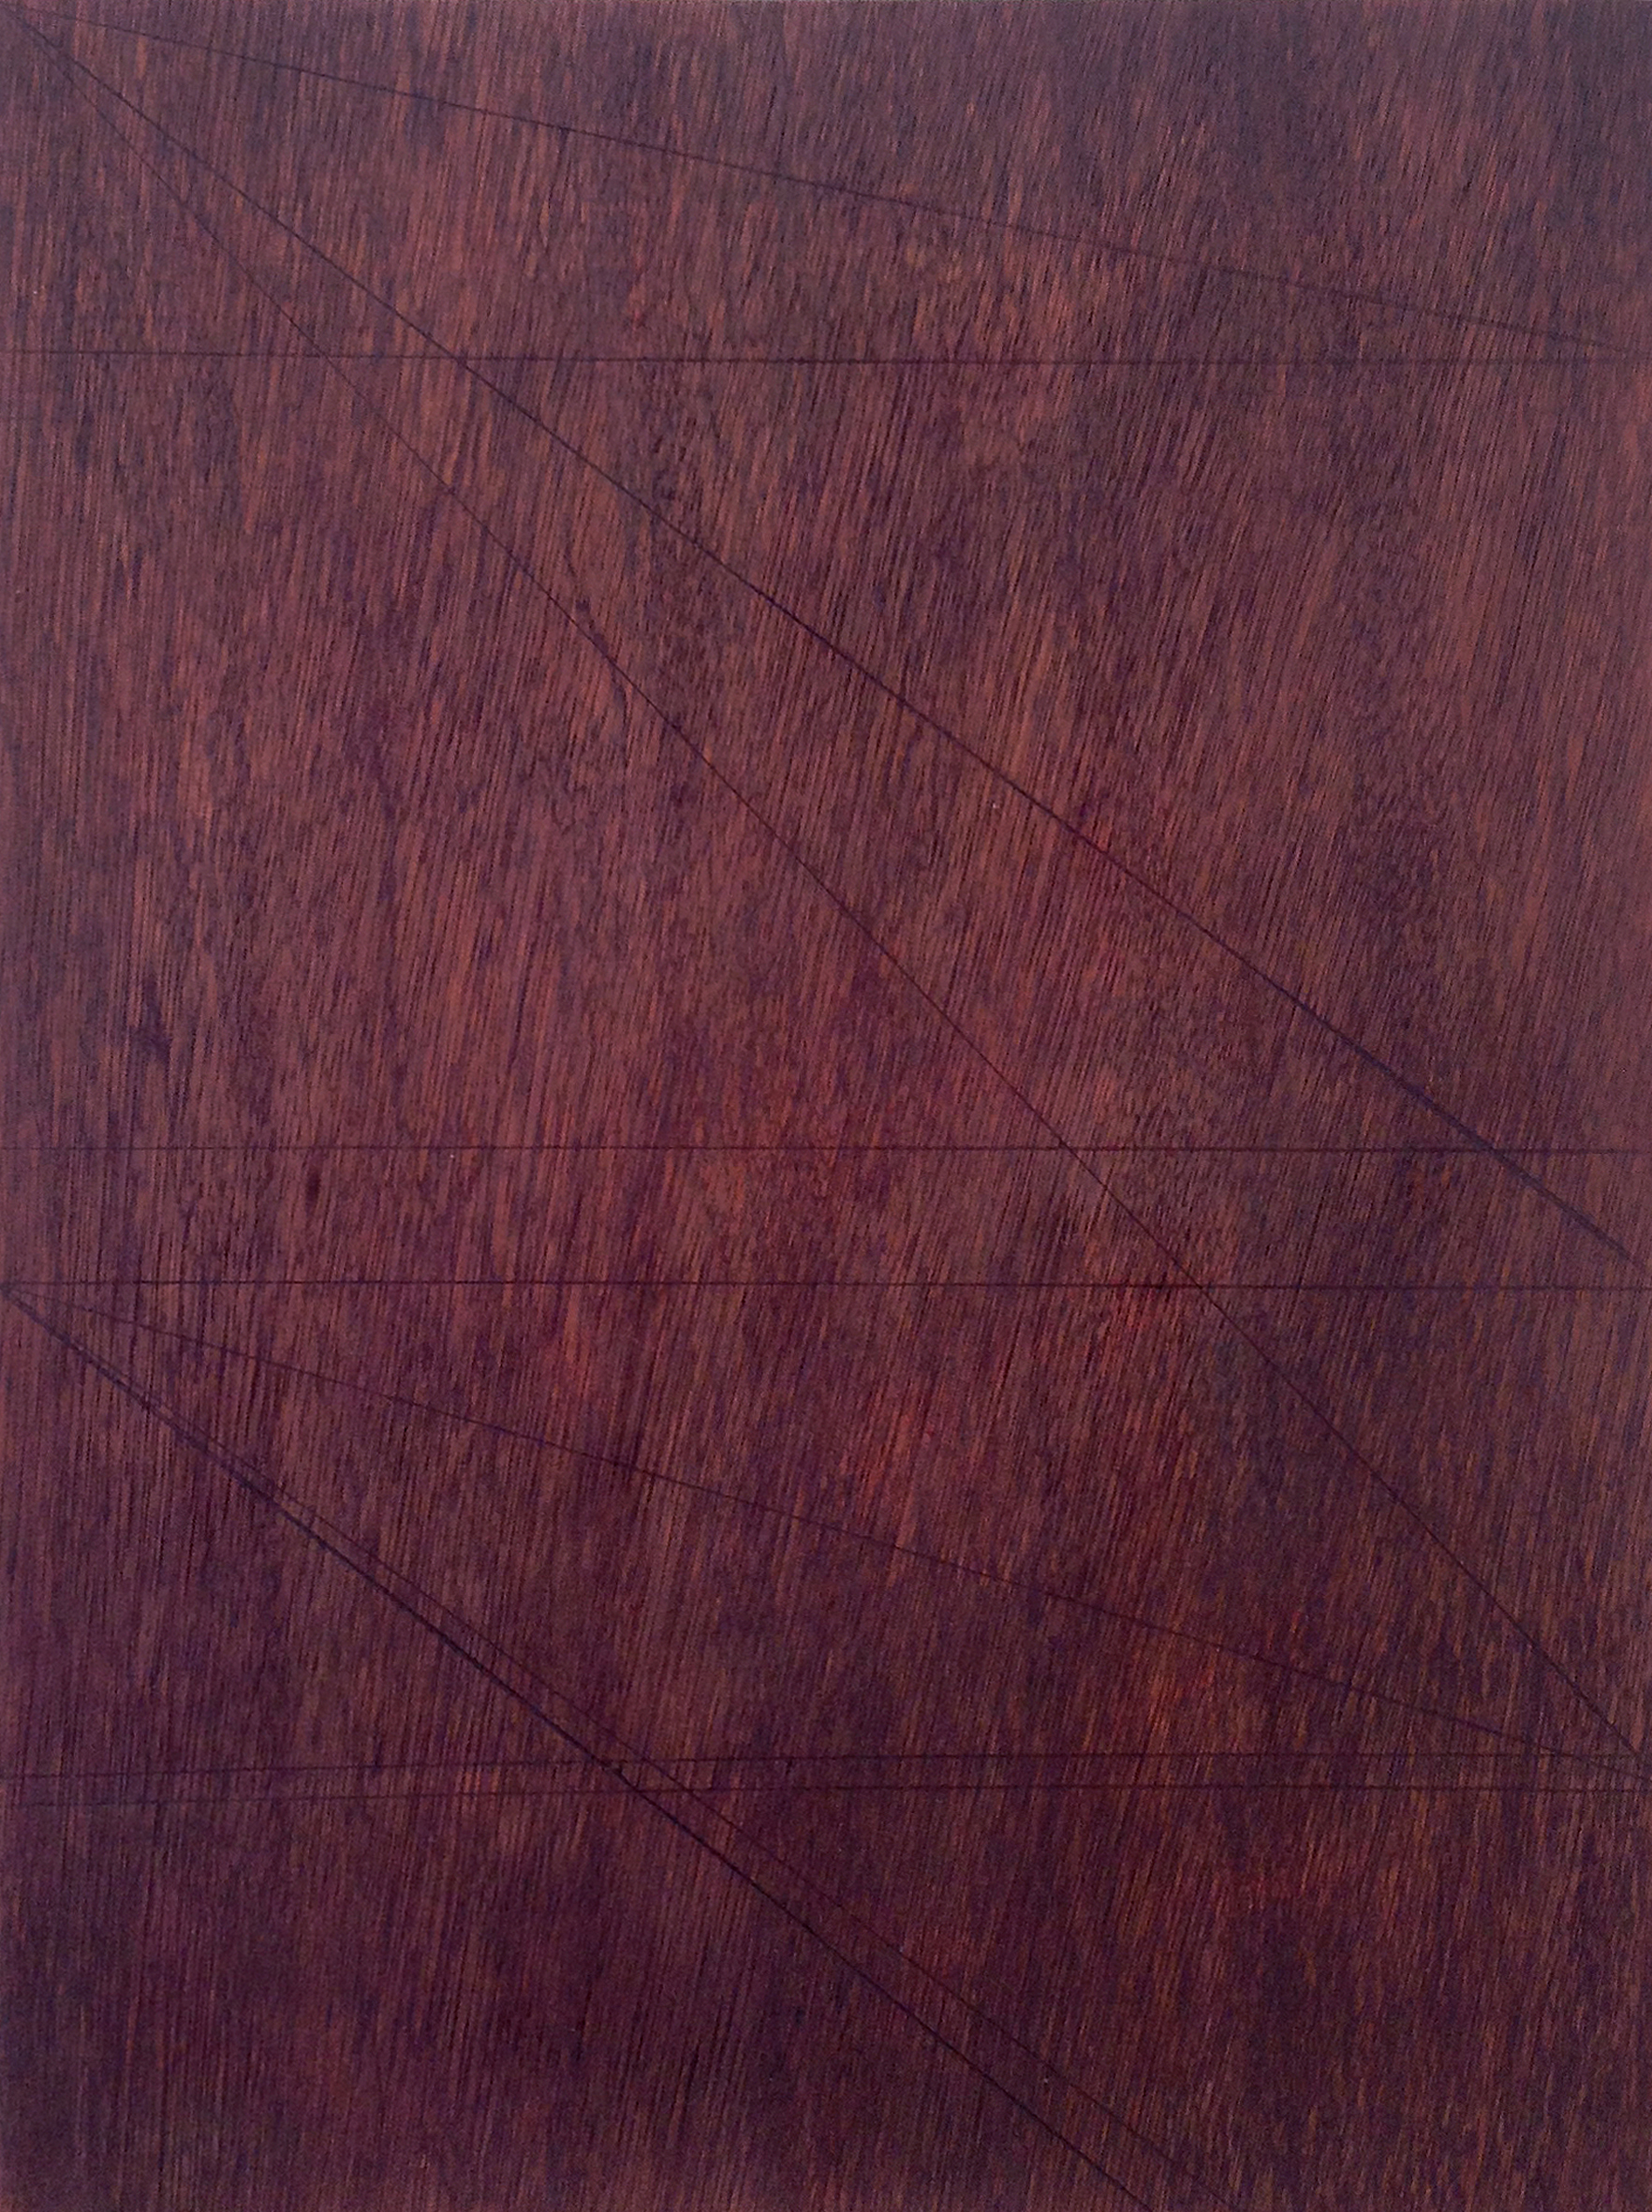 'That Place', 2014, oil paint and linseed oil on marine ply, 30 x 40 cm